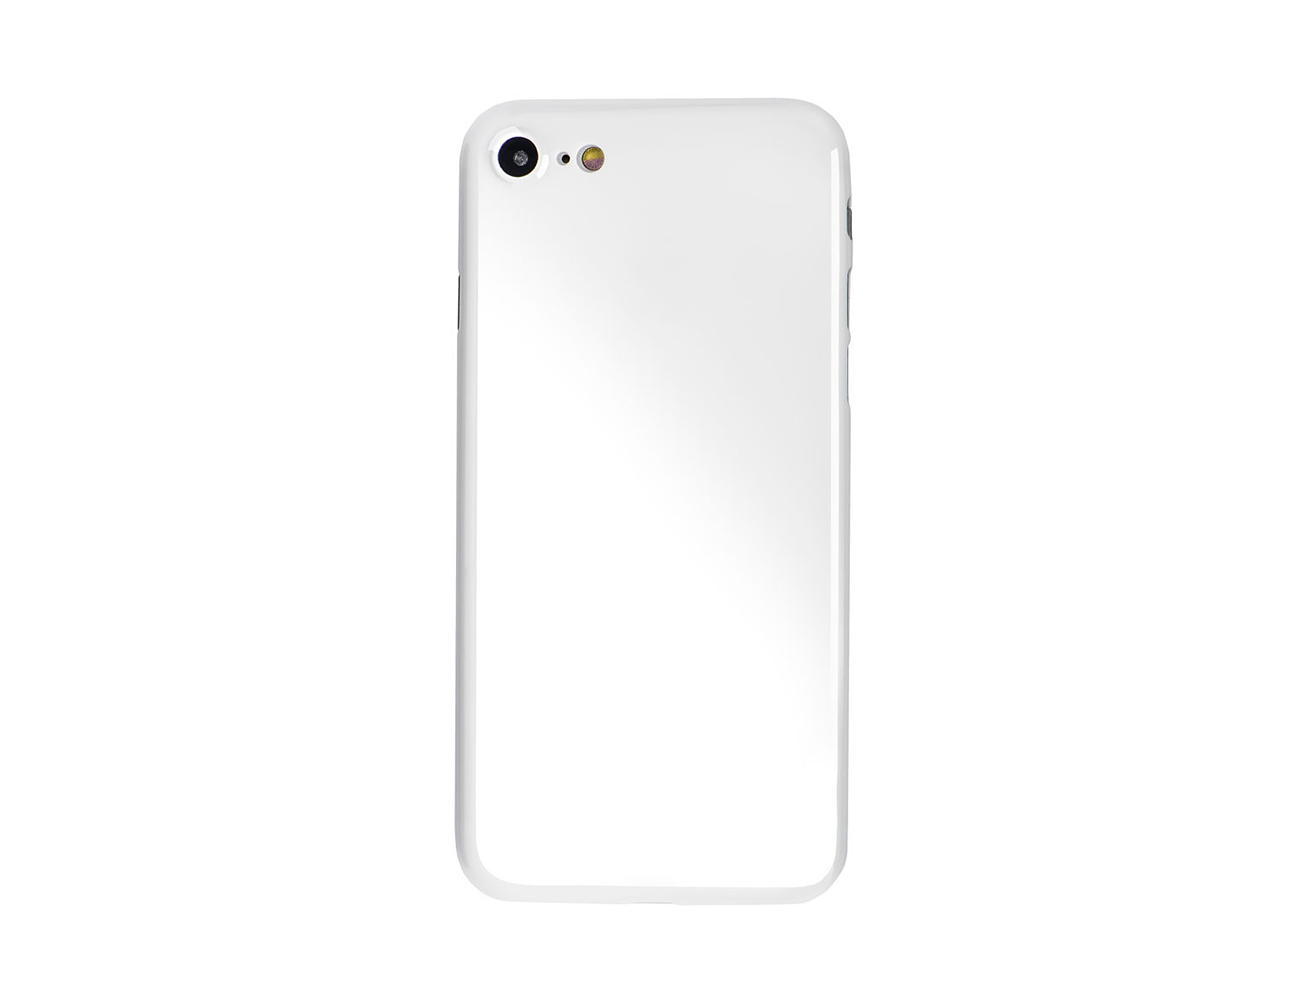 A thin case that turns your iPhone Jet White